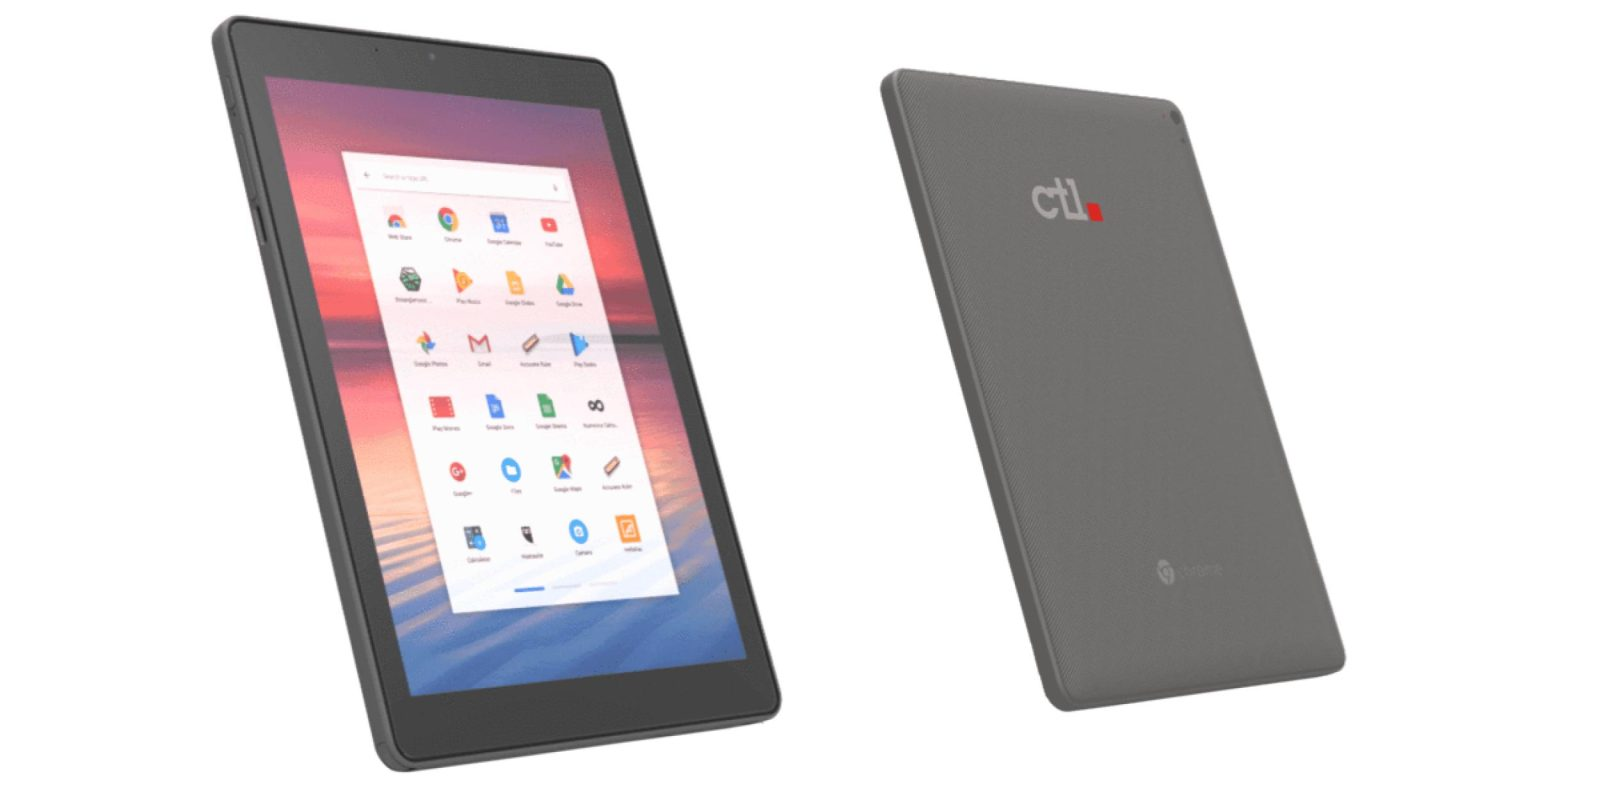 Ctl Launches 299 Chromebook Tablet Tx1 For Education